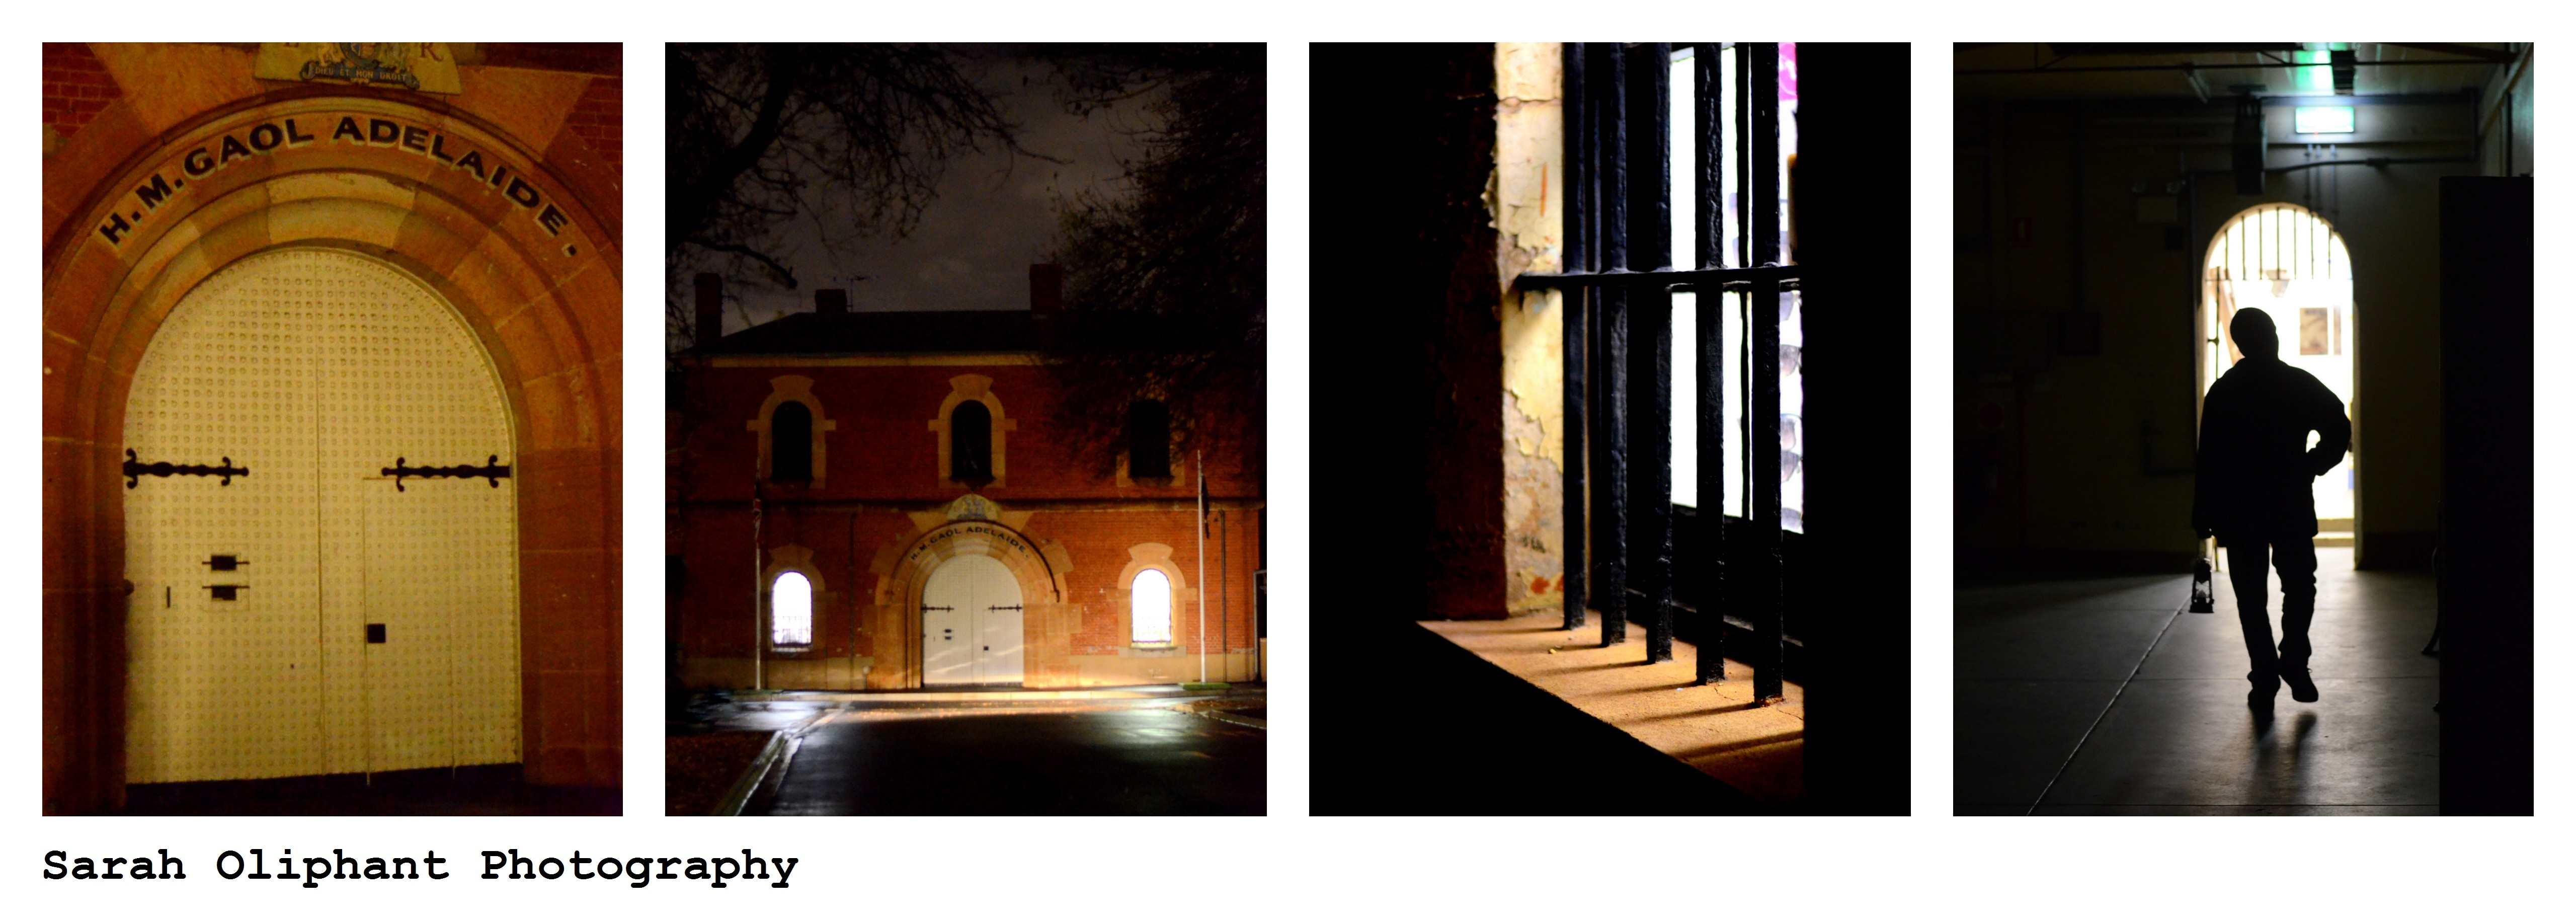 Adelaide Gaol Collage